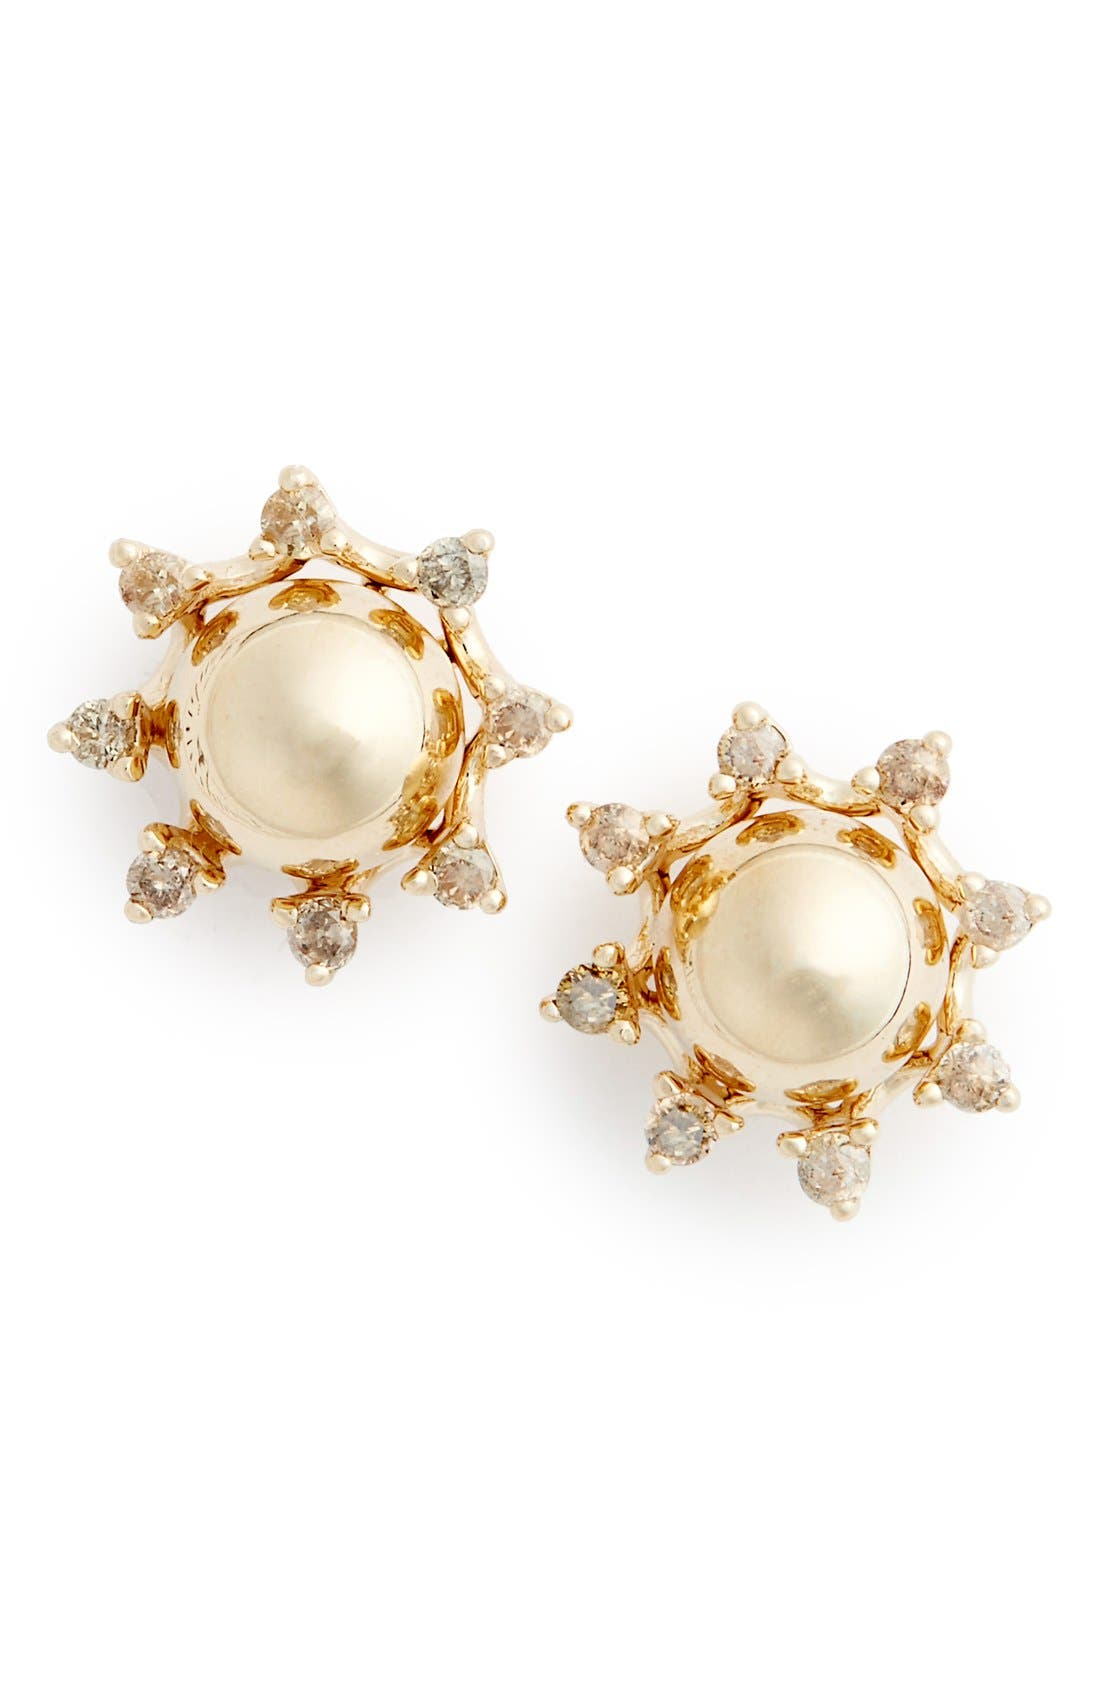 ANNA SHEFFIELD Starlight Champagne Diamond Stud Earrings